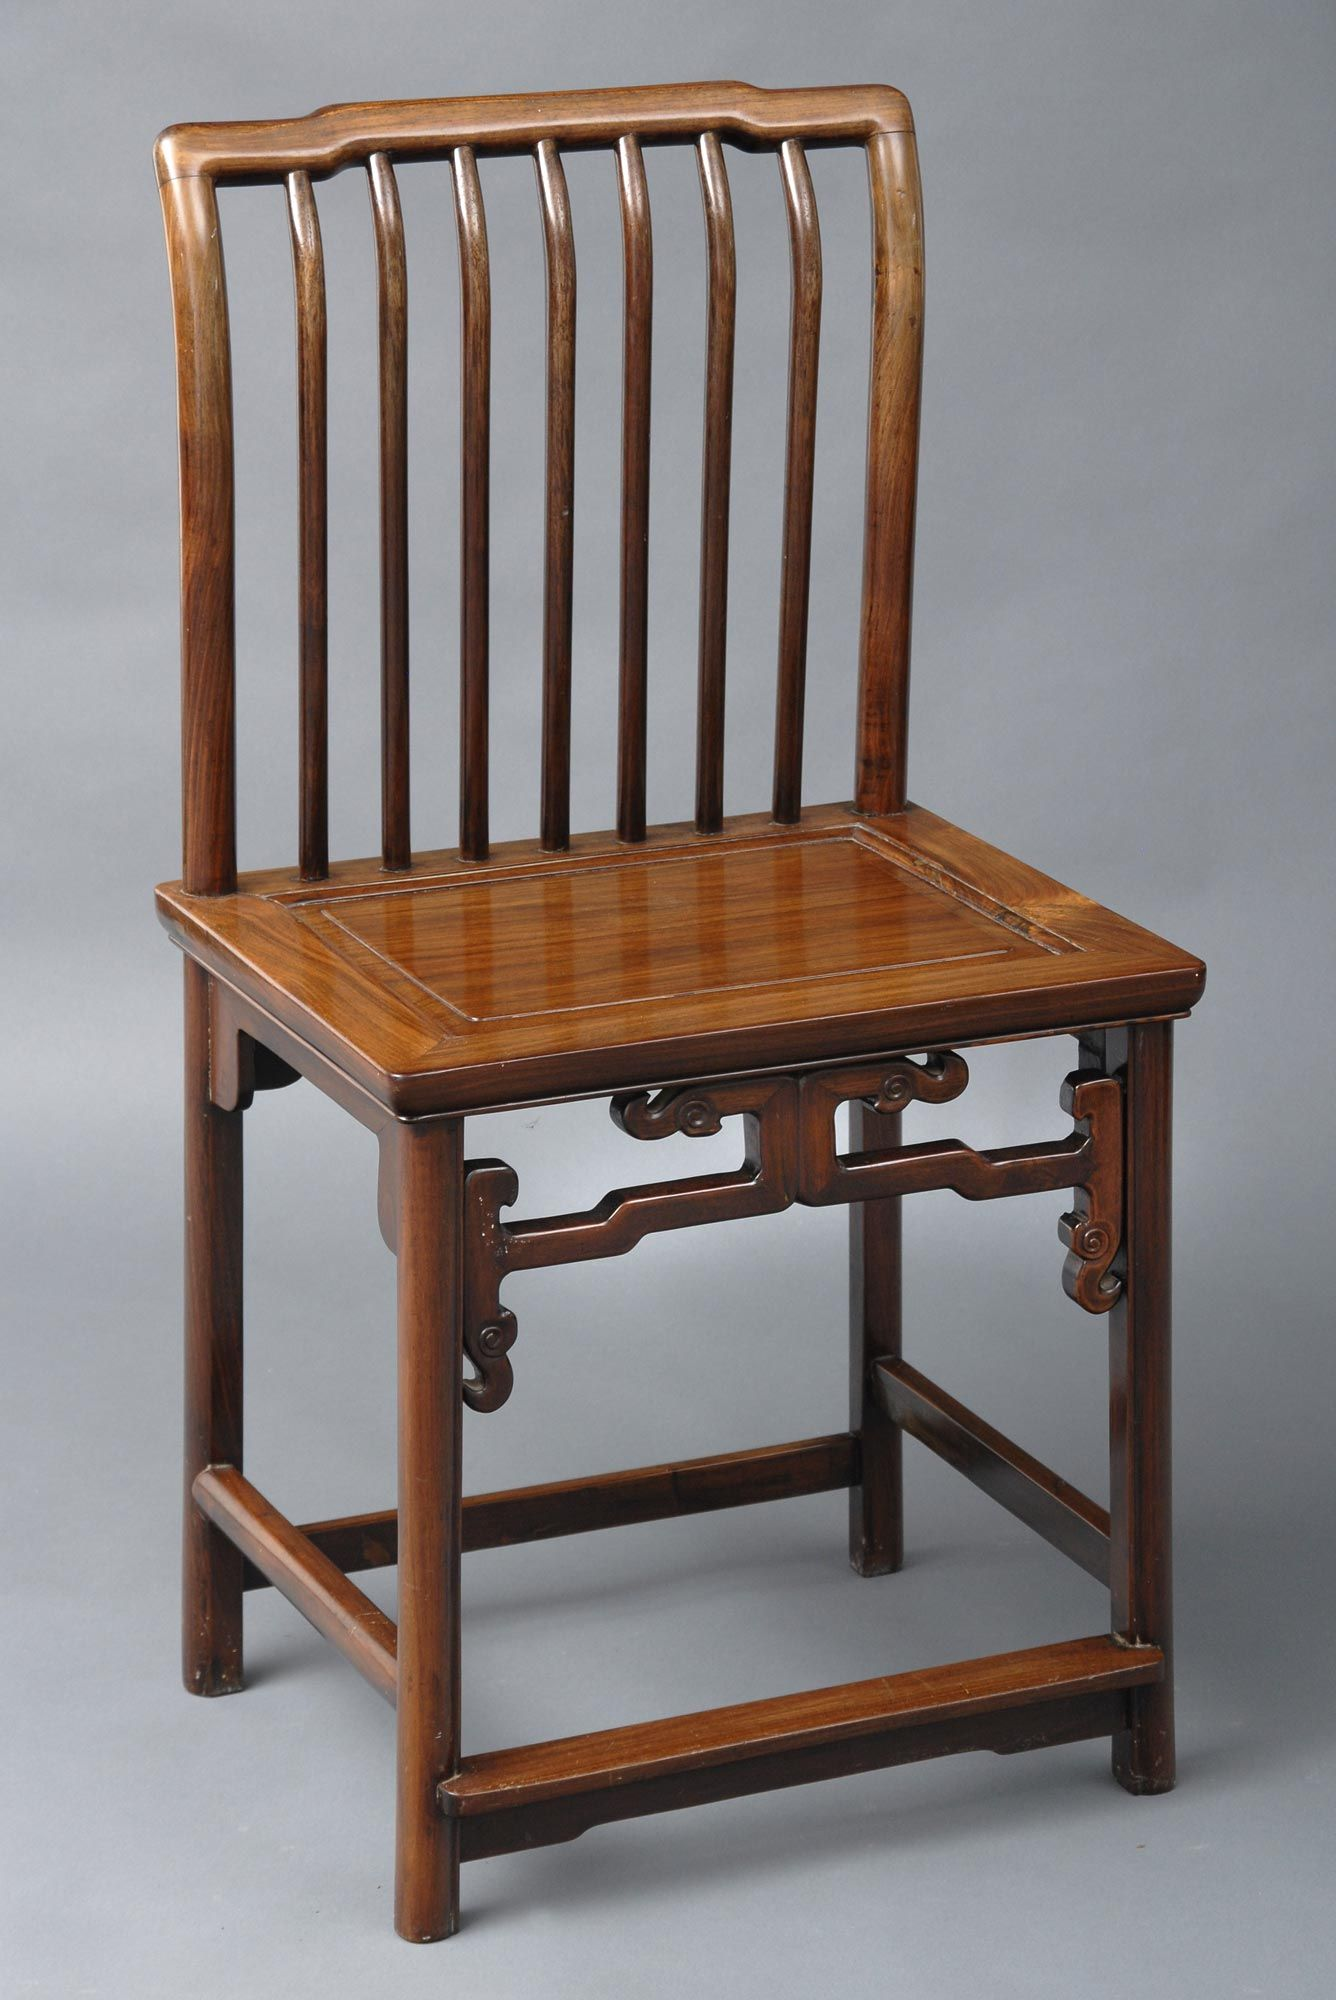 Chinese Antique Chair Chinese rosewood chair, shaped crest rail, curved  back splat, molded - Chinese Antique Chair Chinese Rosewood Chair, Shaped Crest Rail